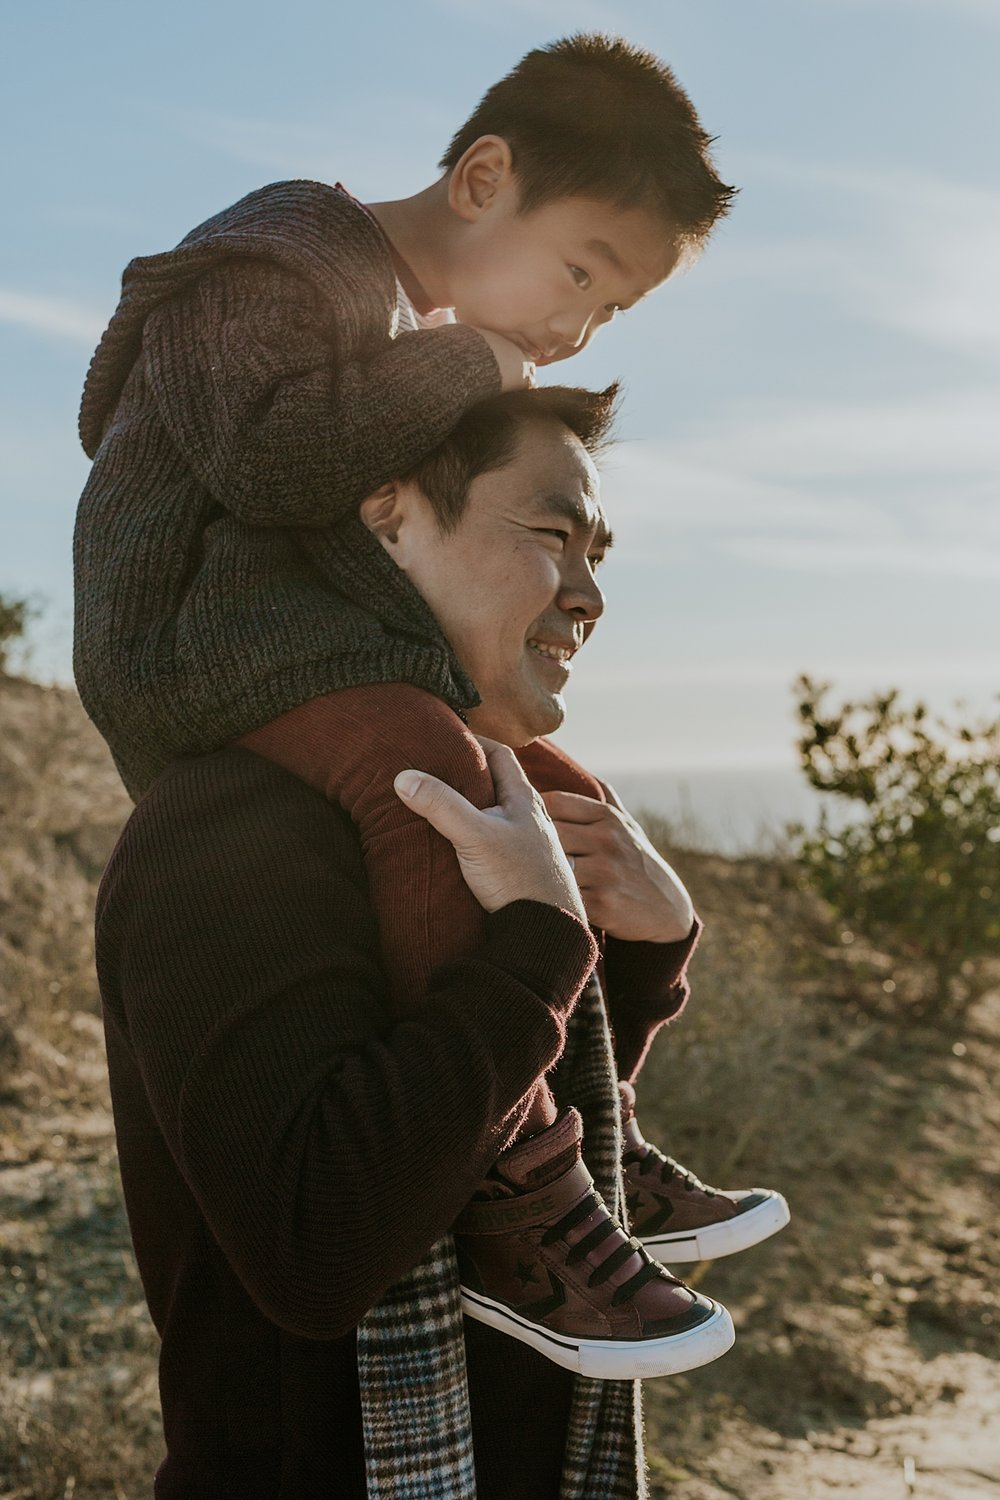 Orange County family photographer. Dad gives his son a shoulder ride while son rests on dad's head at Top of the World Laguna Beach during outdoor family photo session